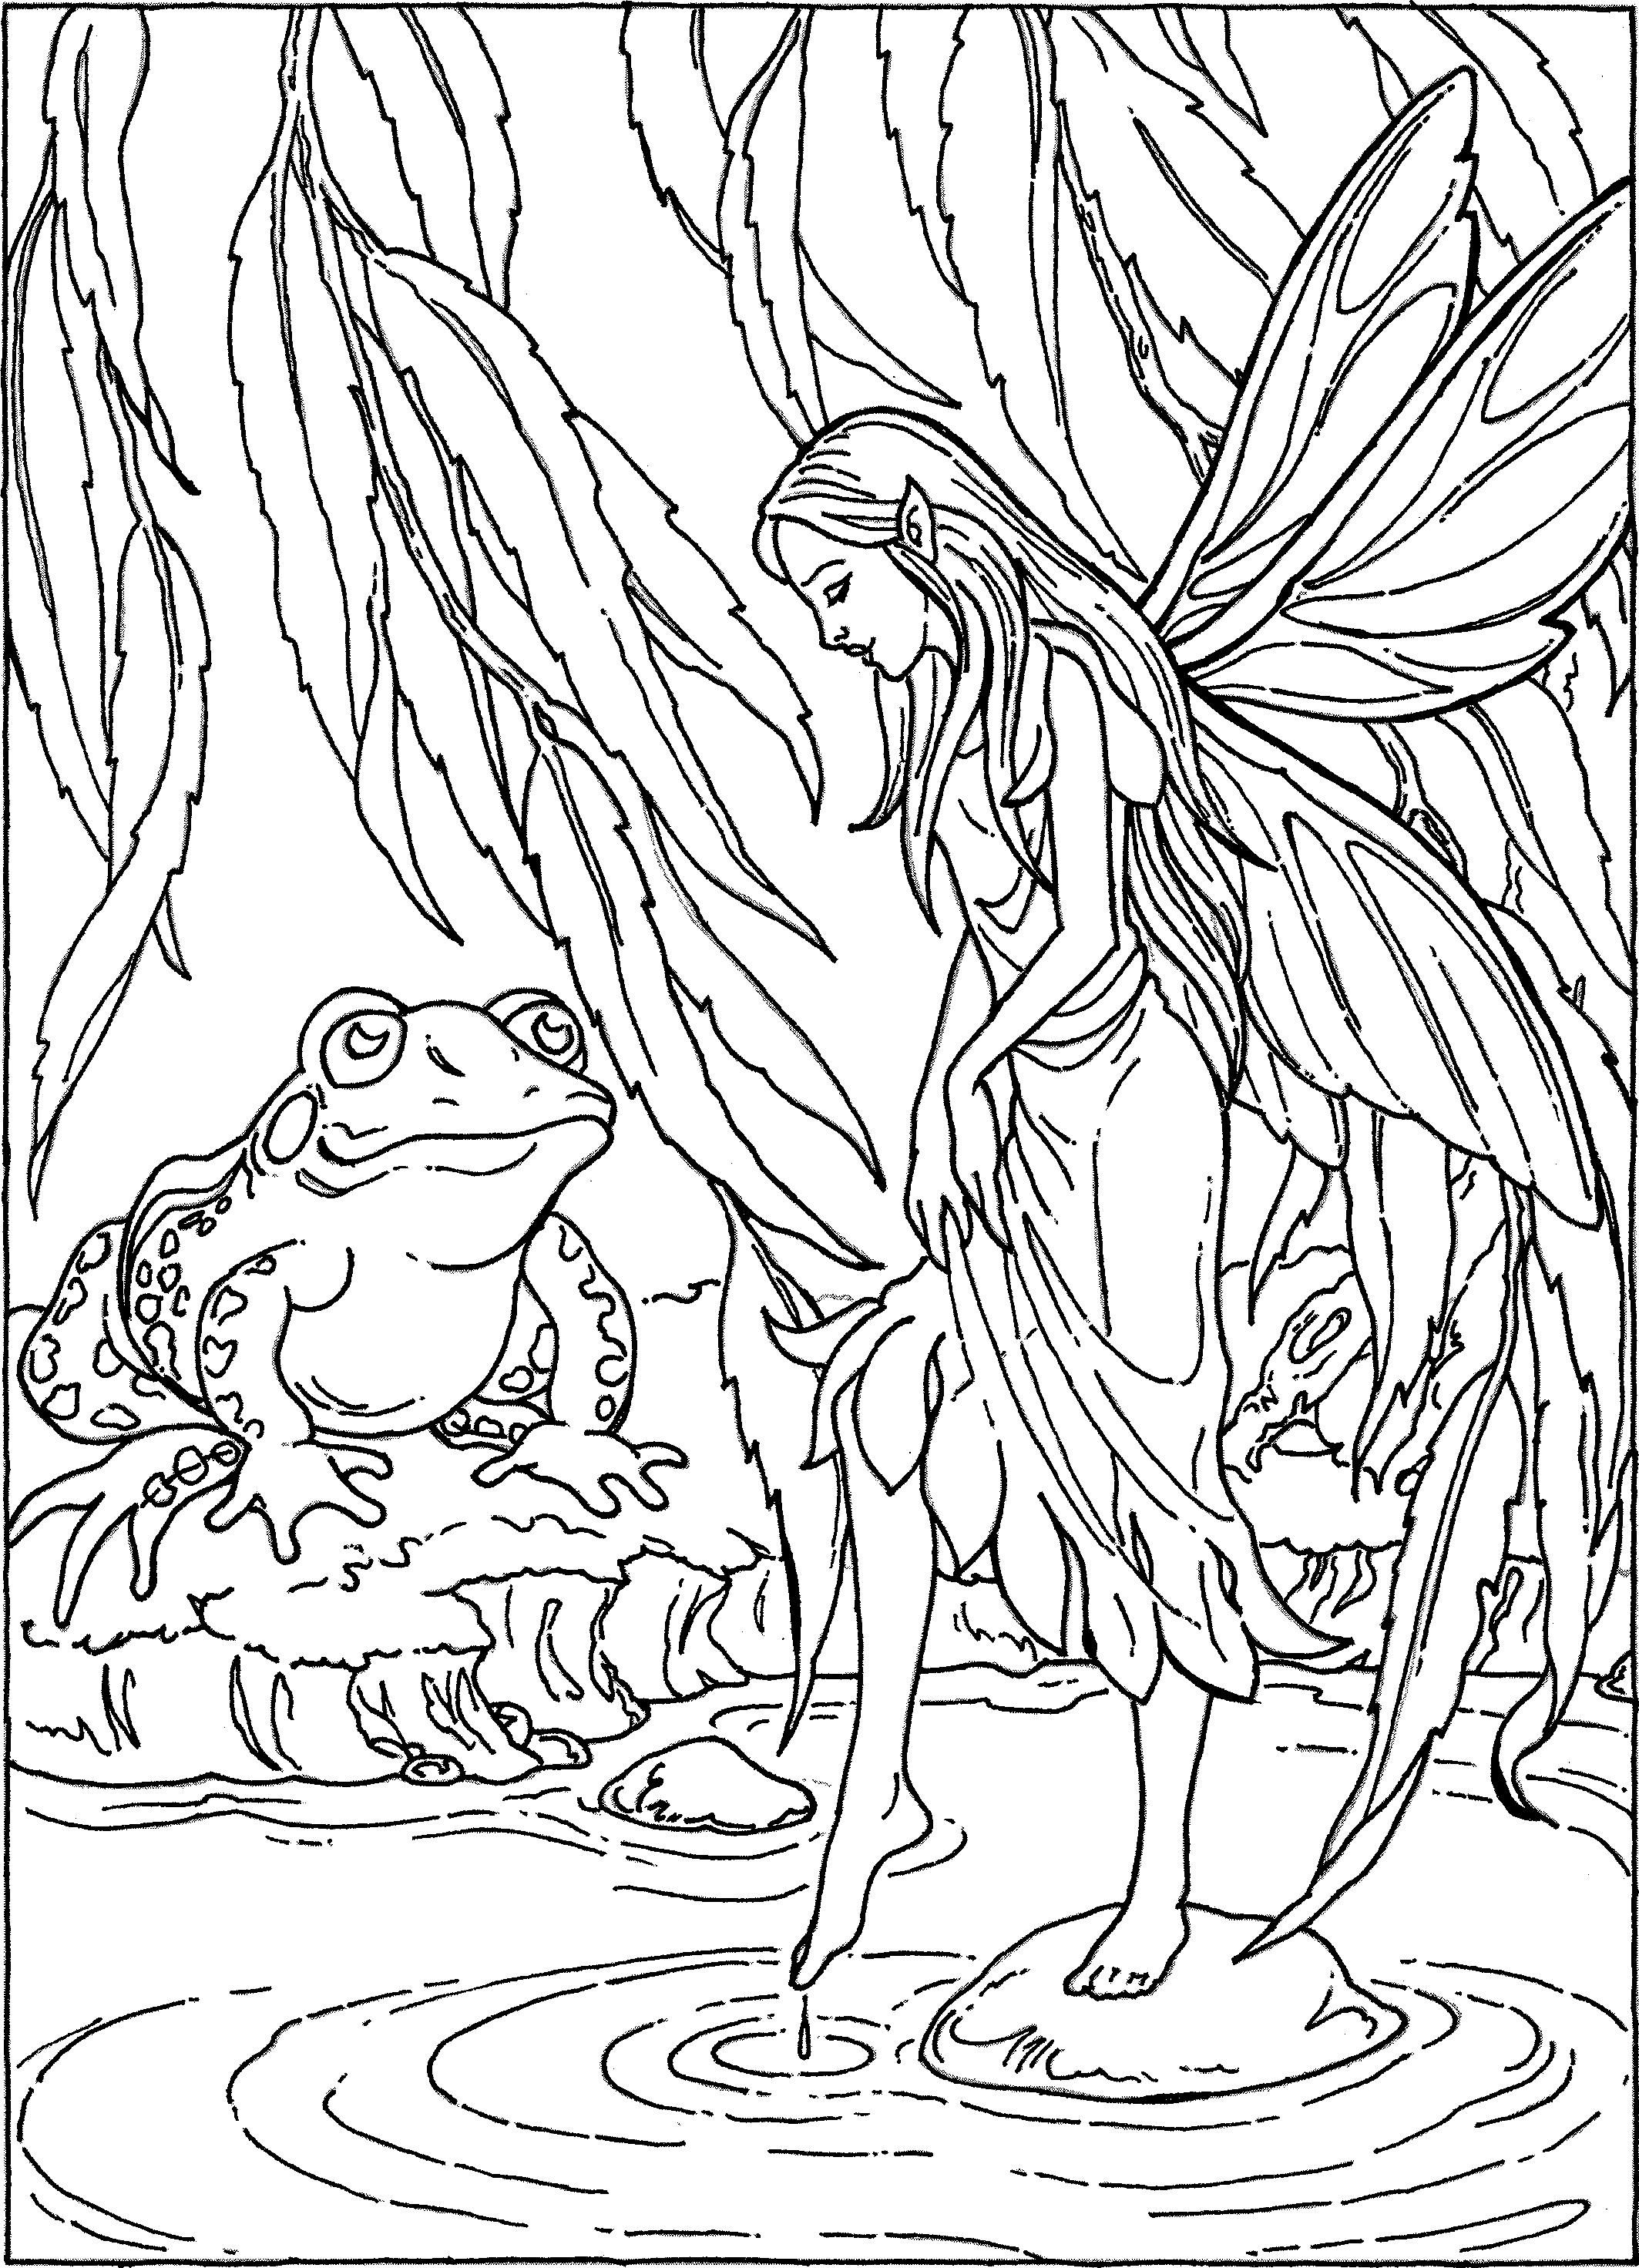 Fairy and pond frog coloring page Adult Colouring